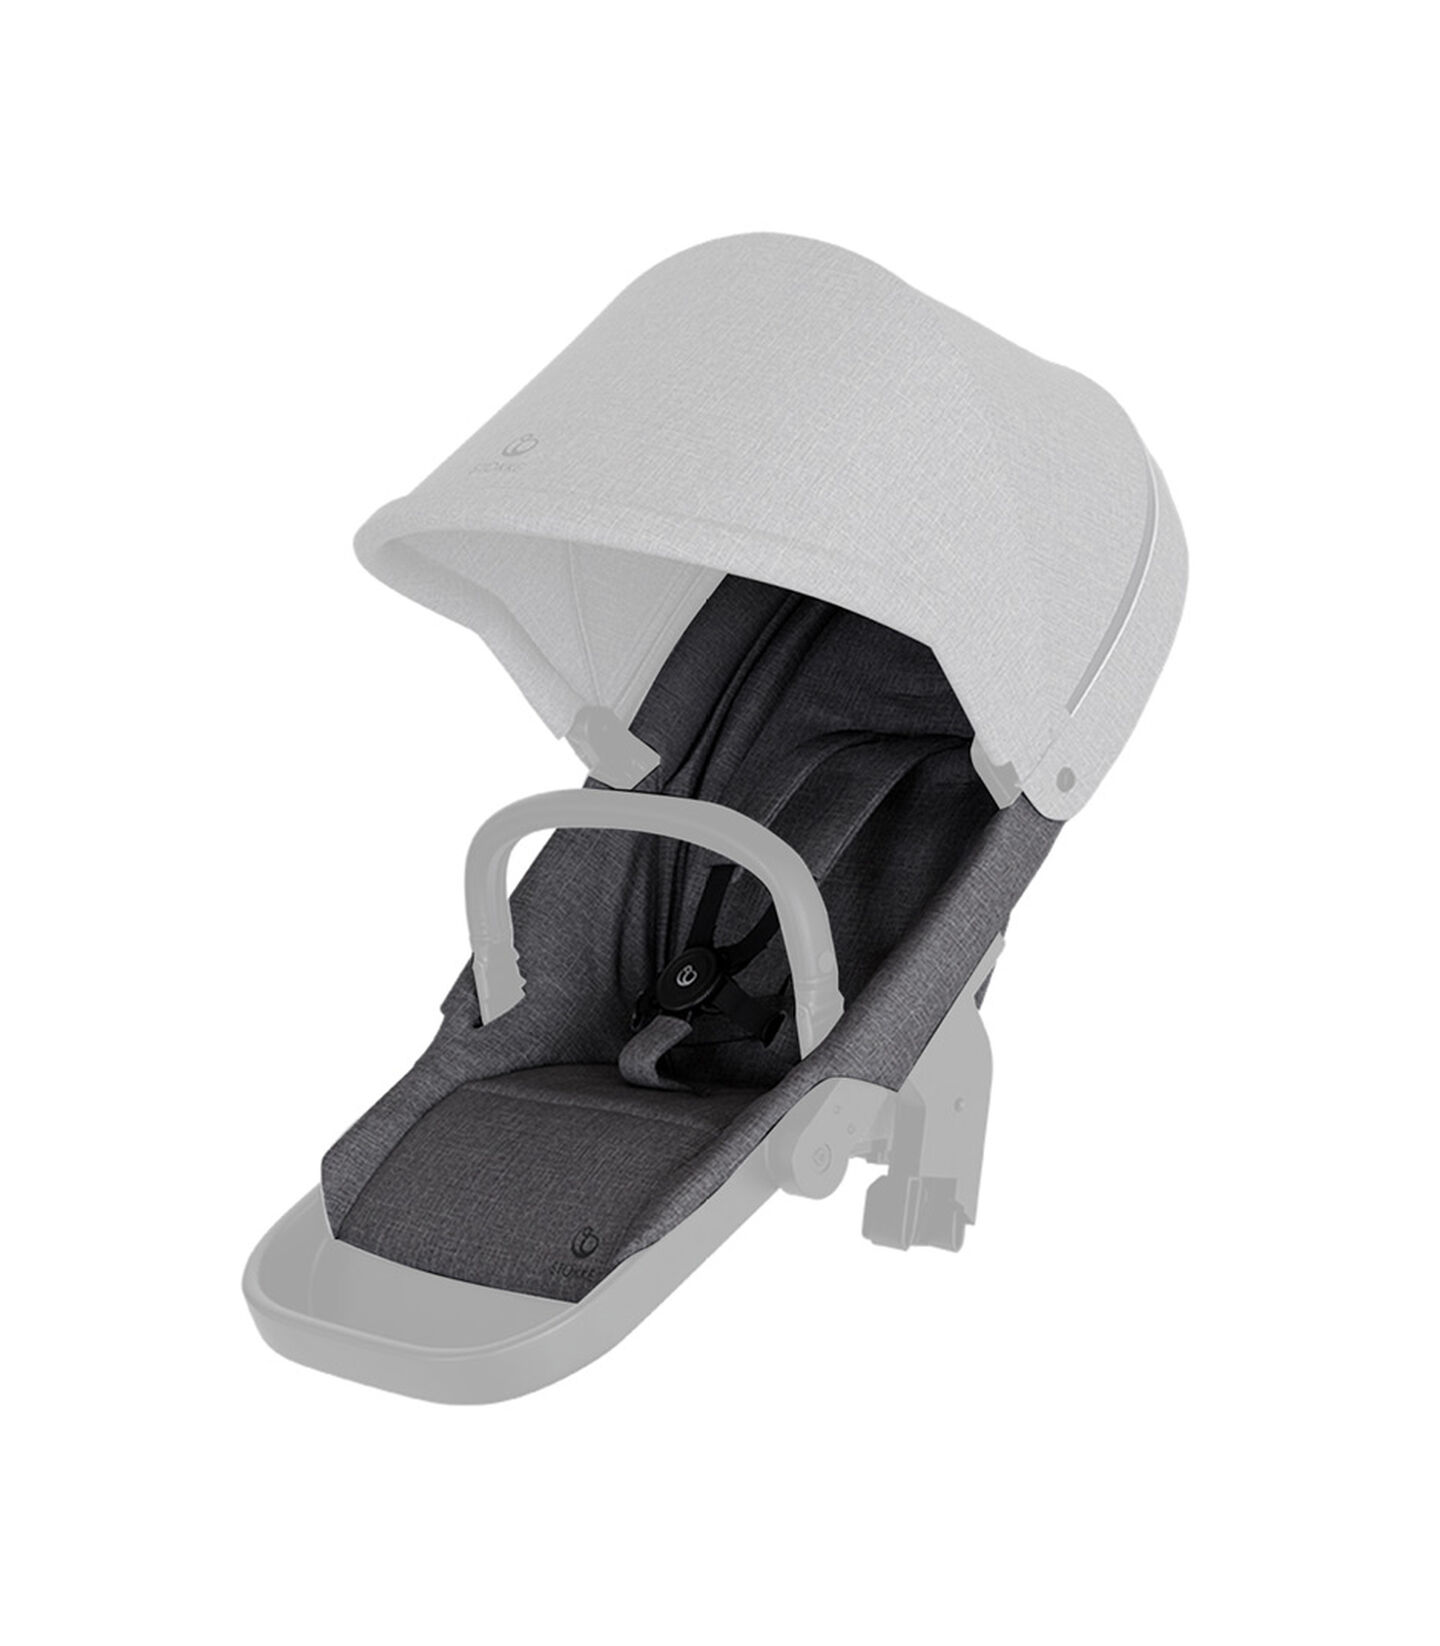 Stokke® Beat seat textile BlackMel wo Can Harness Shpg Baske, Nero Melange, mainview view 2